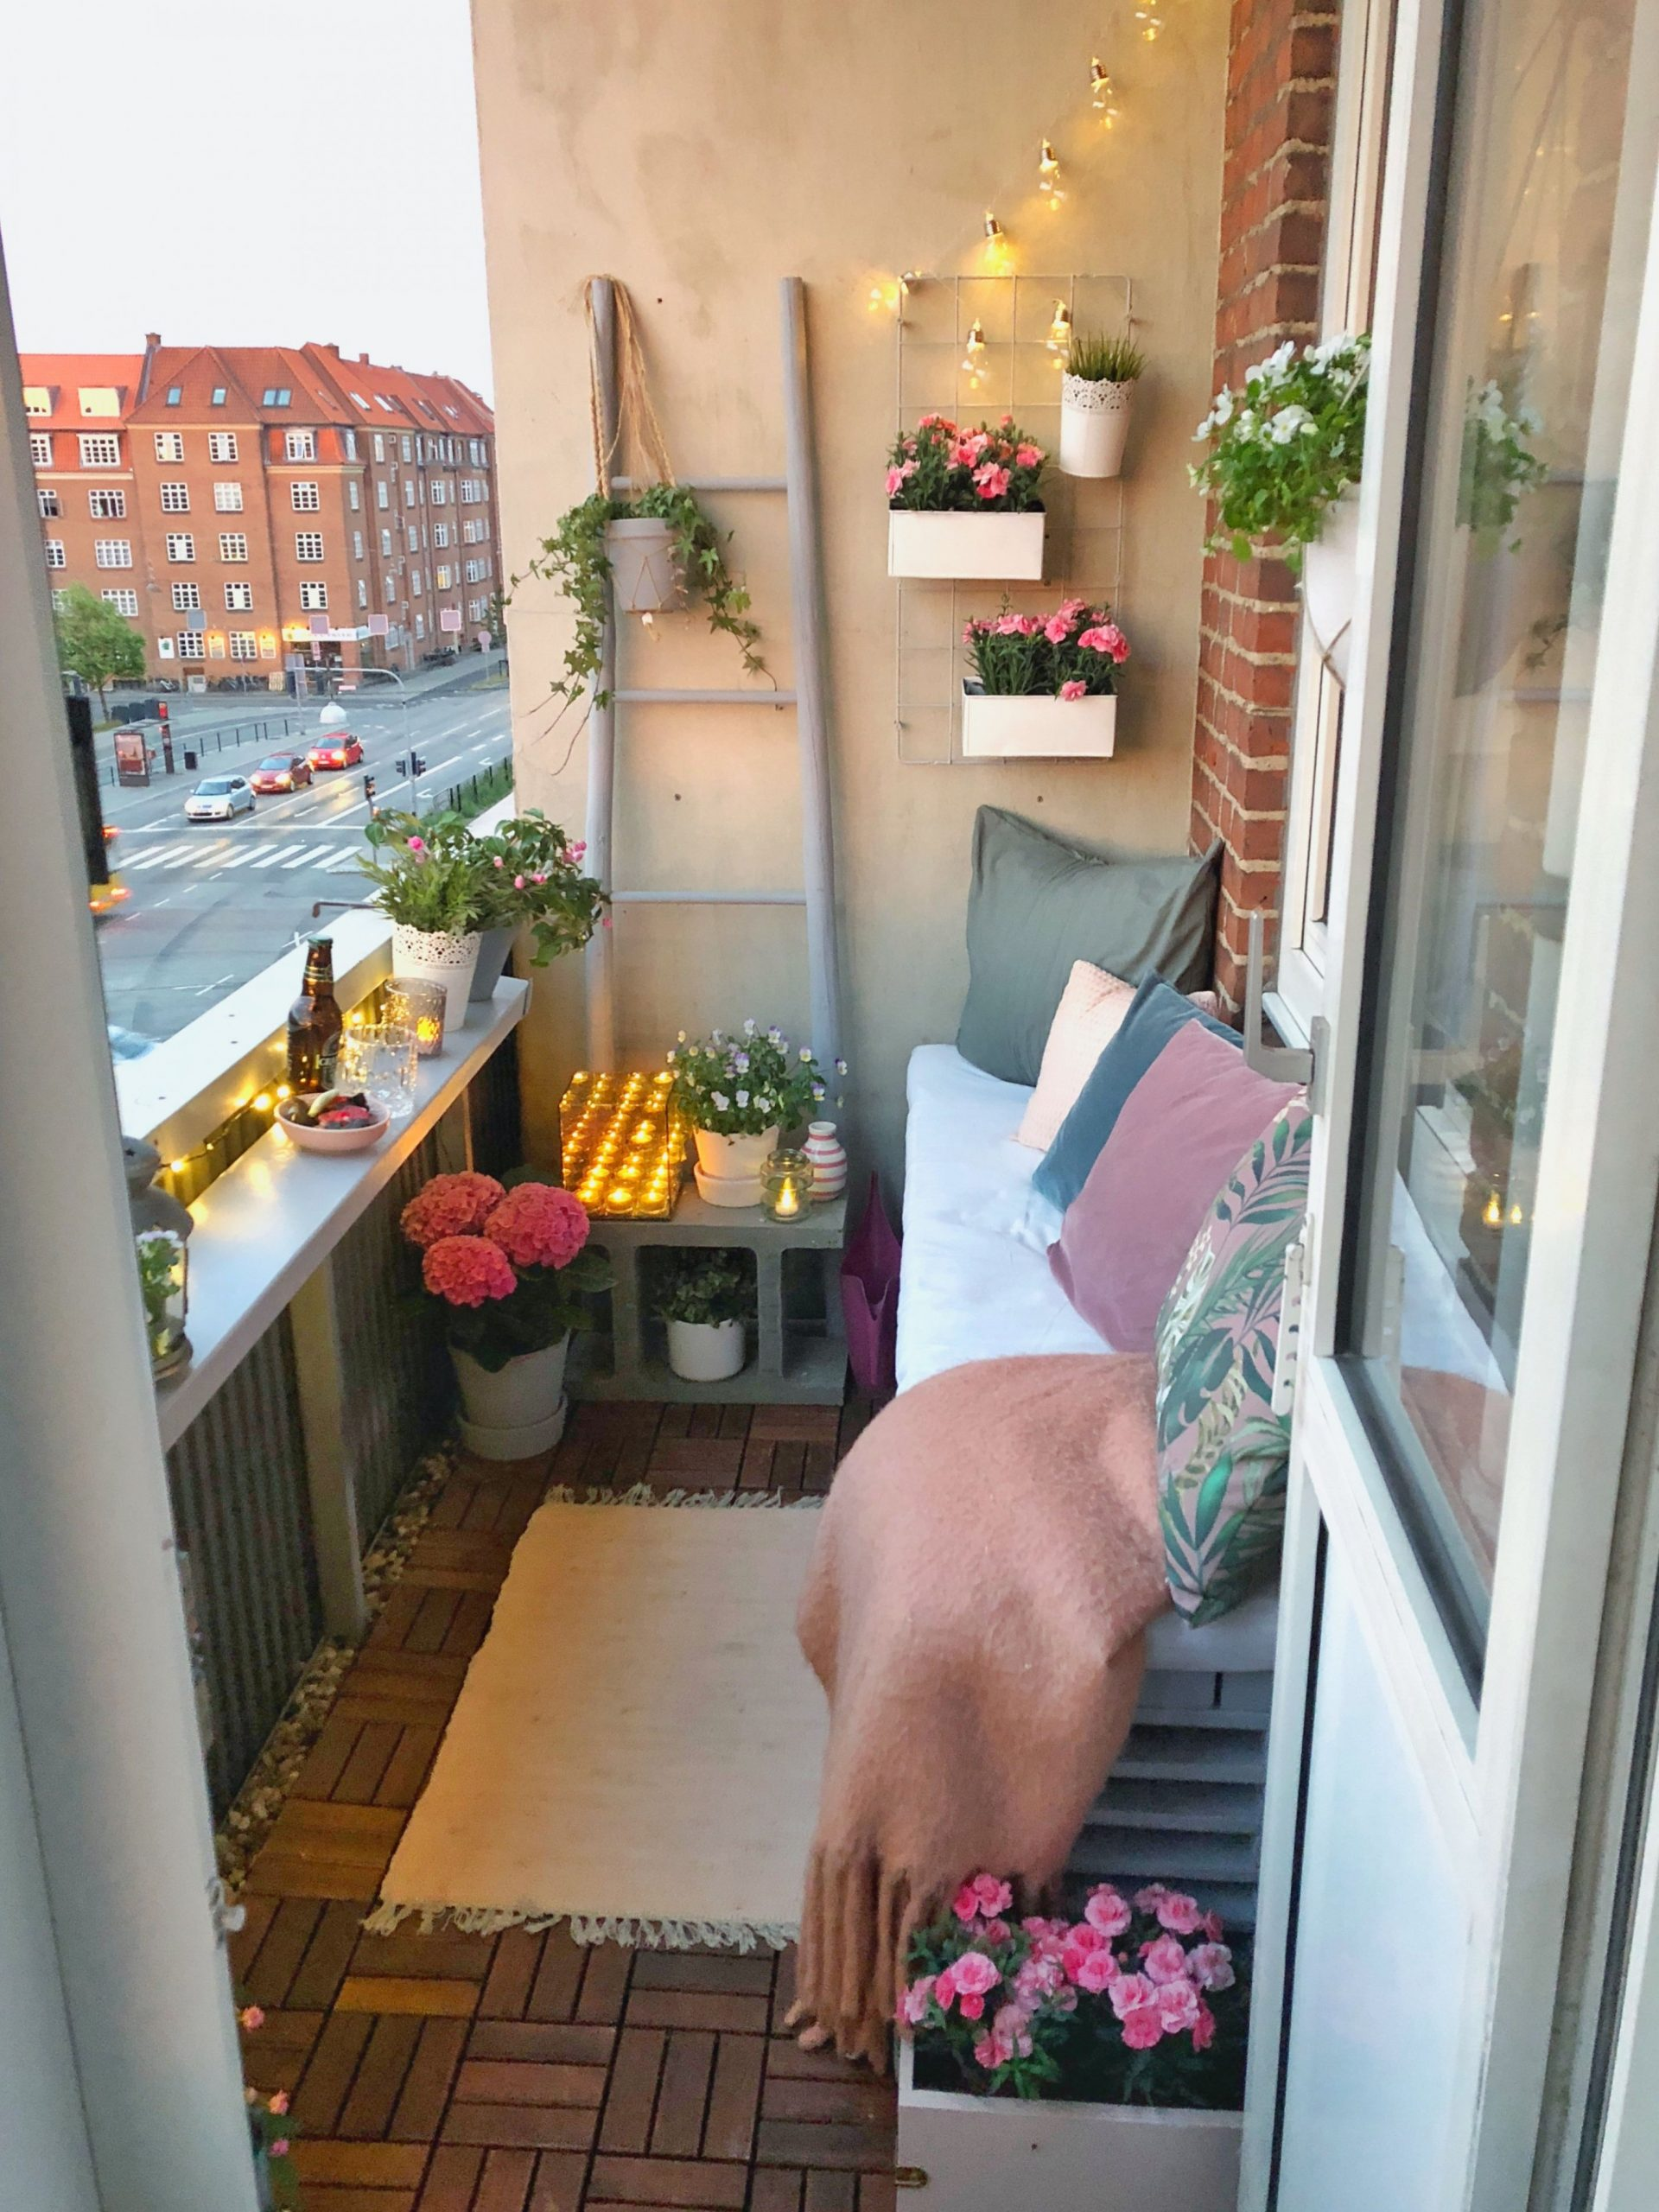 ·F·a·i·t·h· 신앙 : yeayme ]  Apartment balcony decorating  - Decorating Apartment Balcony Ideas